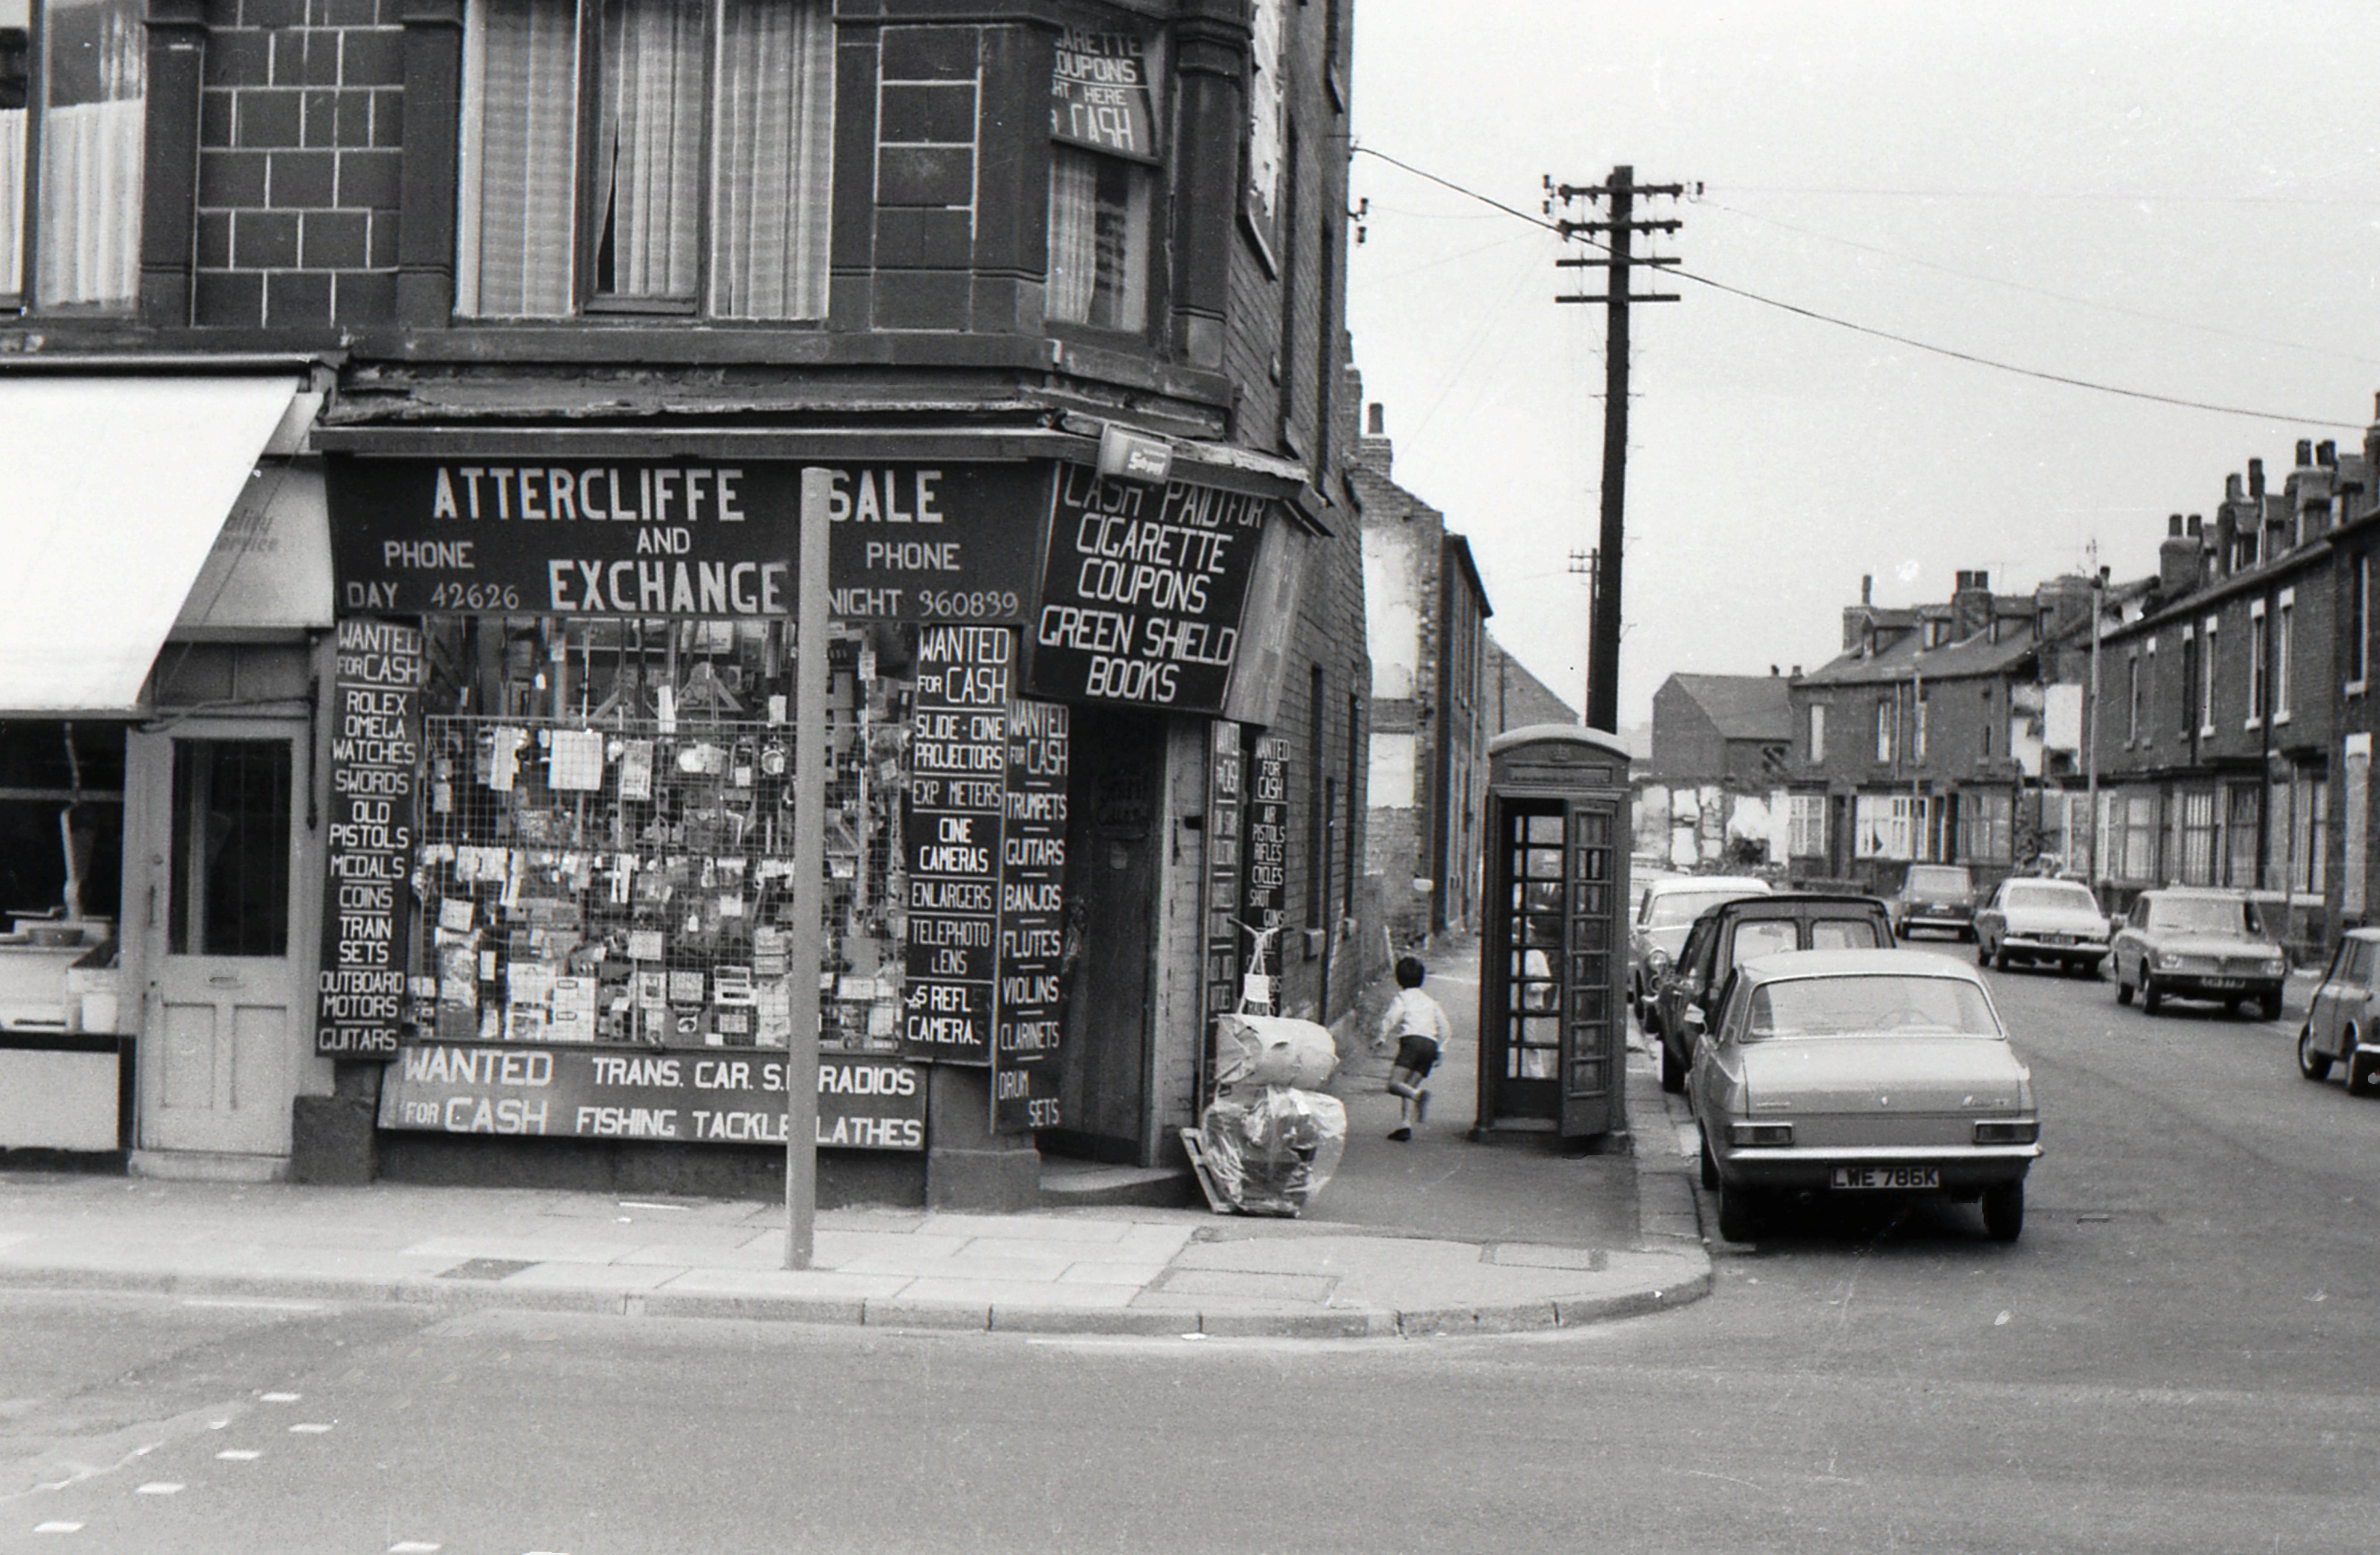 Attercliffe remembered sheffield history chat for The sheffield